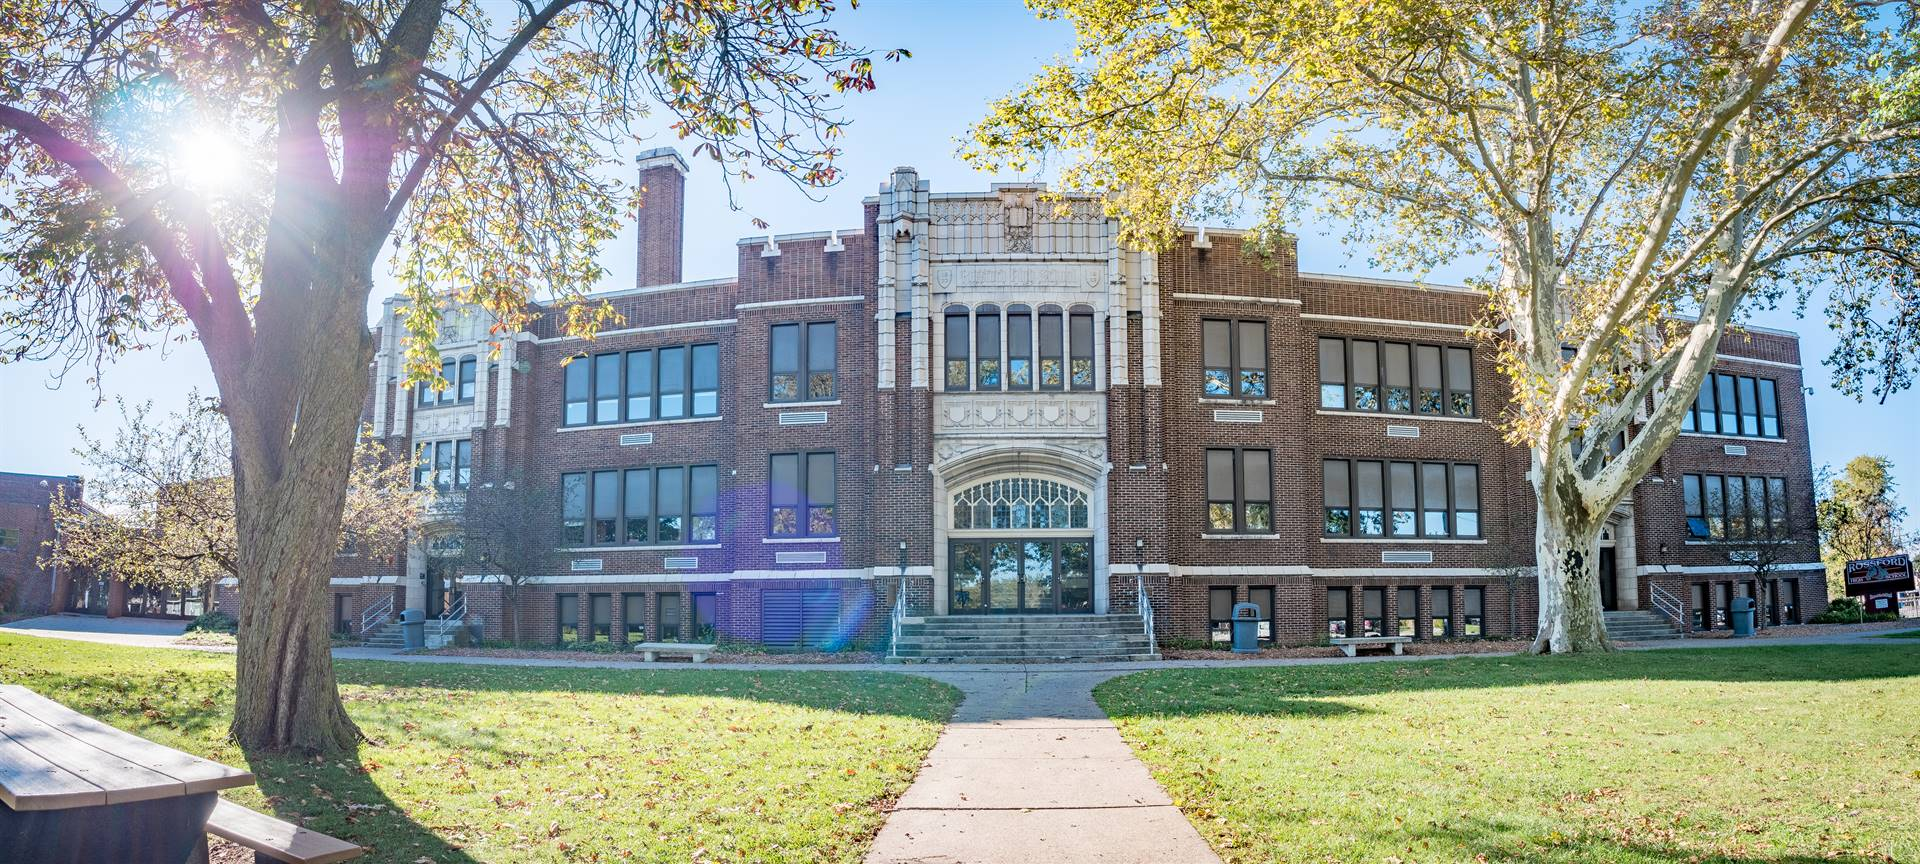 Rossford High School front facade